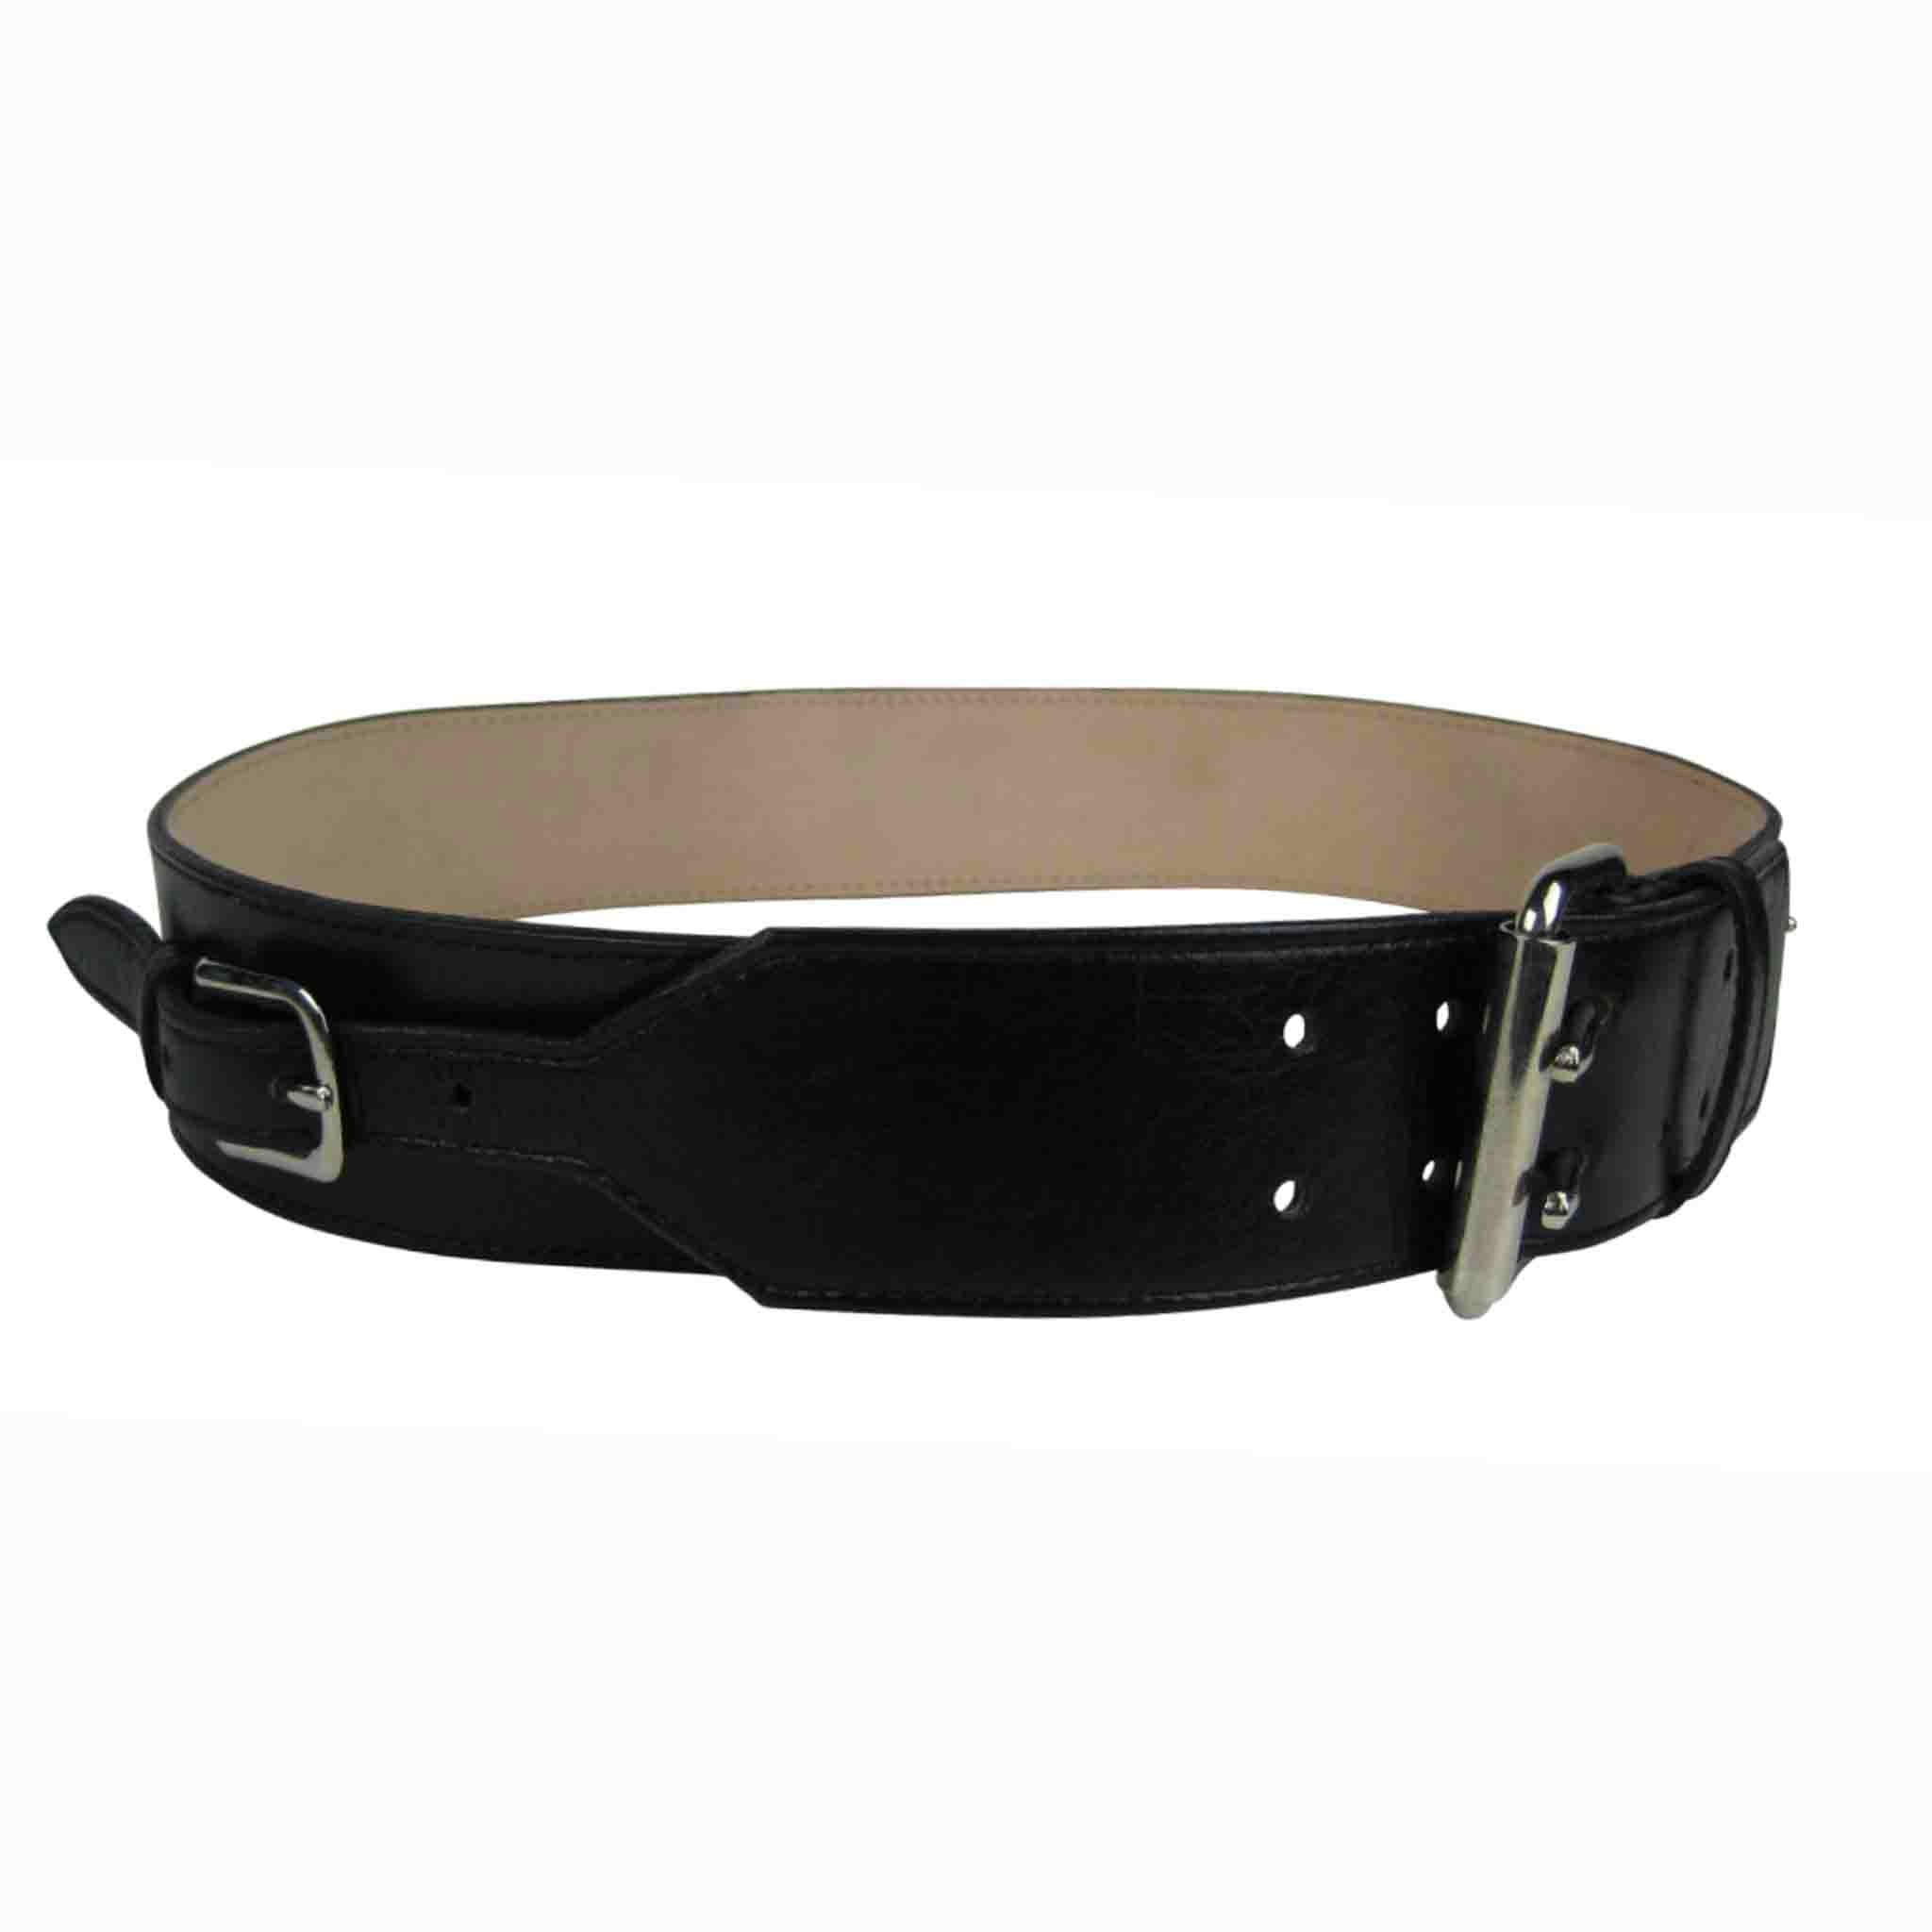 BLACK LEATHER BELT MEN'S BEWERBER